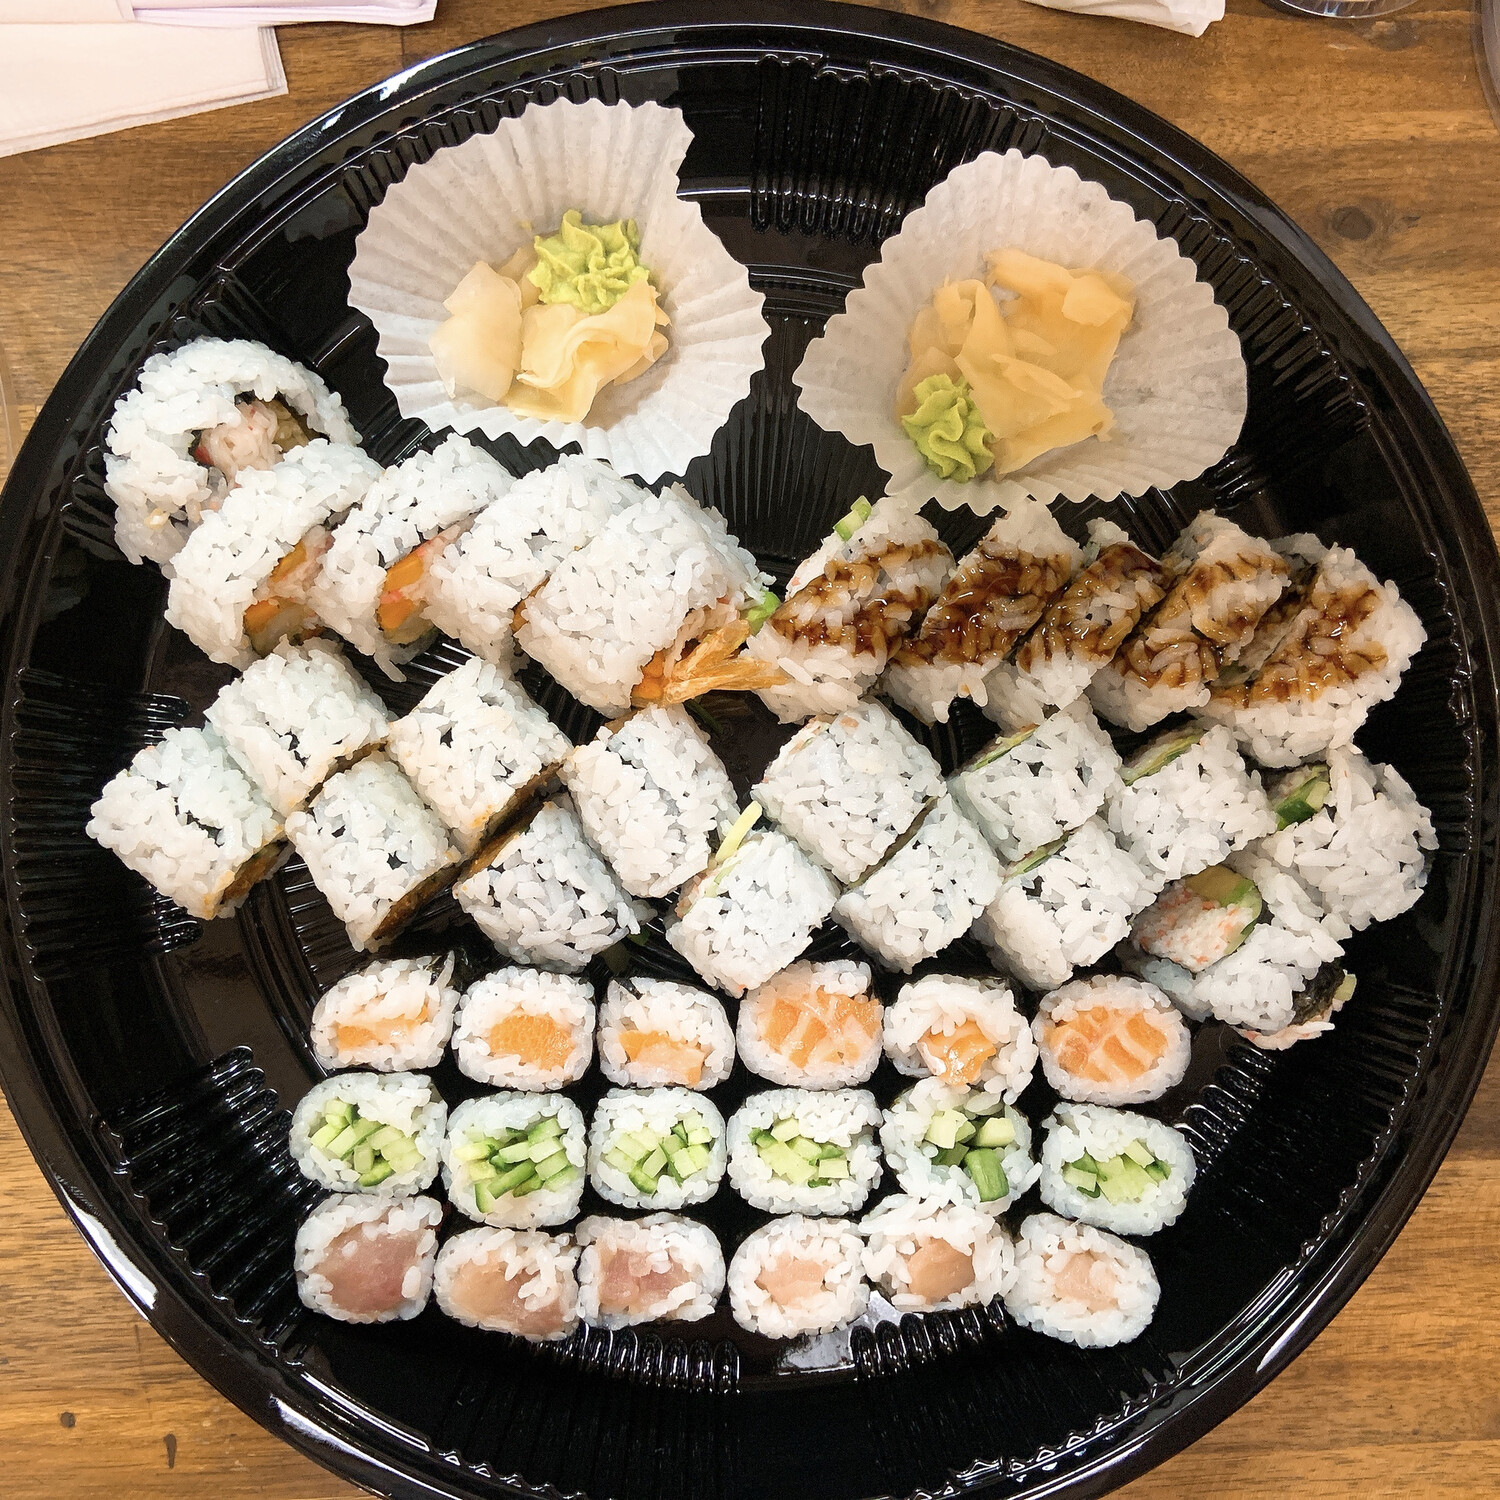 Party Tray A (For 2-3)